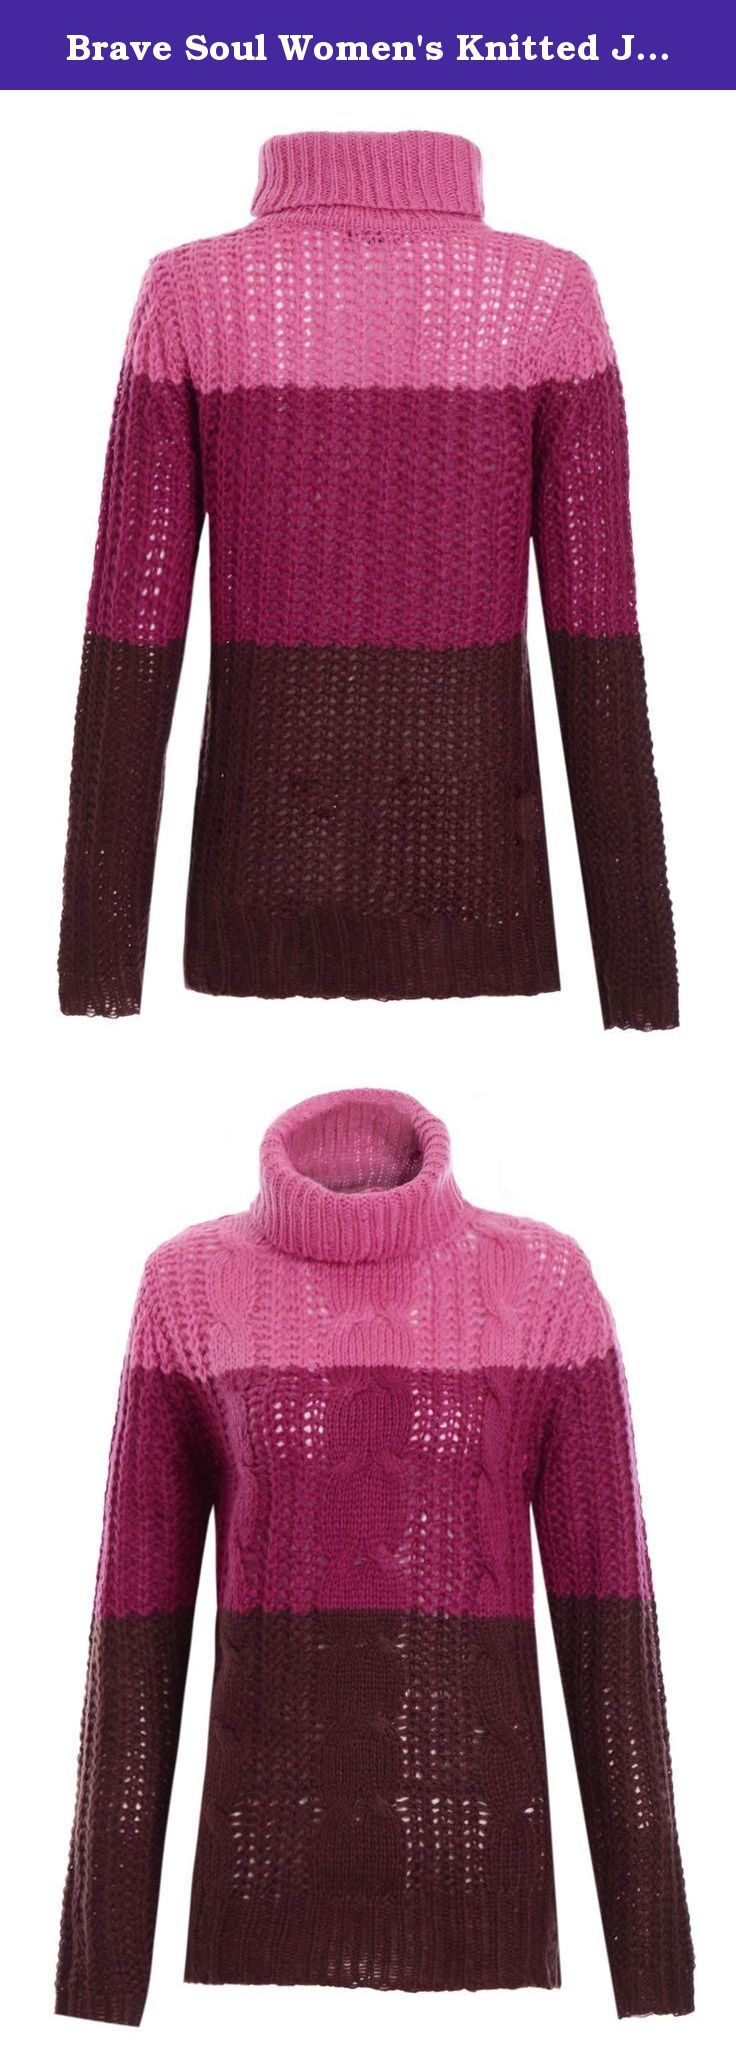 Brave Soul Women's Knitted Jumper Roll Polo Neck Chunky Cerise 8. - Brand New & High Quality Ladies Jumper - Polo Roll Neck, Chunky Knit - Multi Colour Knitted - Ideal for Casual & Outdoors - Composition: 100% Acrylic - Colours: Cerise-Purple-Wine / Turquoise-Royal-Navy - Should you require any further details, please do not hesitate to contact us anytime - 5-9 Working Days delivery to USA (Delivery times exceptionally varies, depending on your area and custom clearance times) .